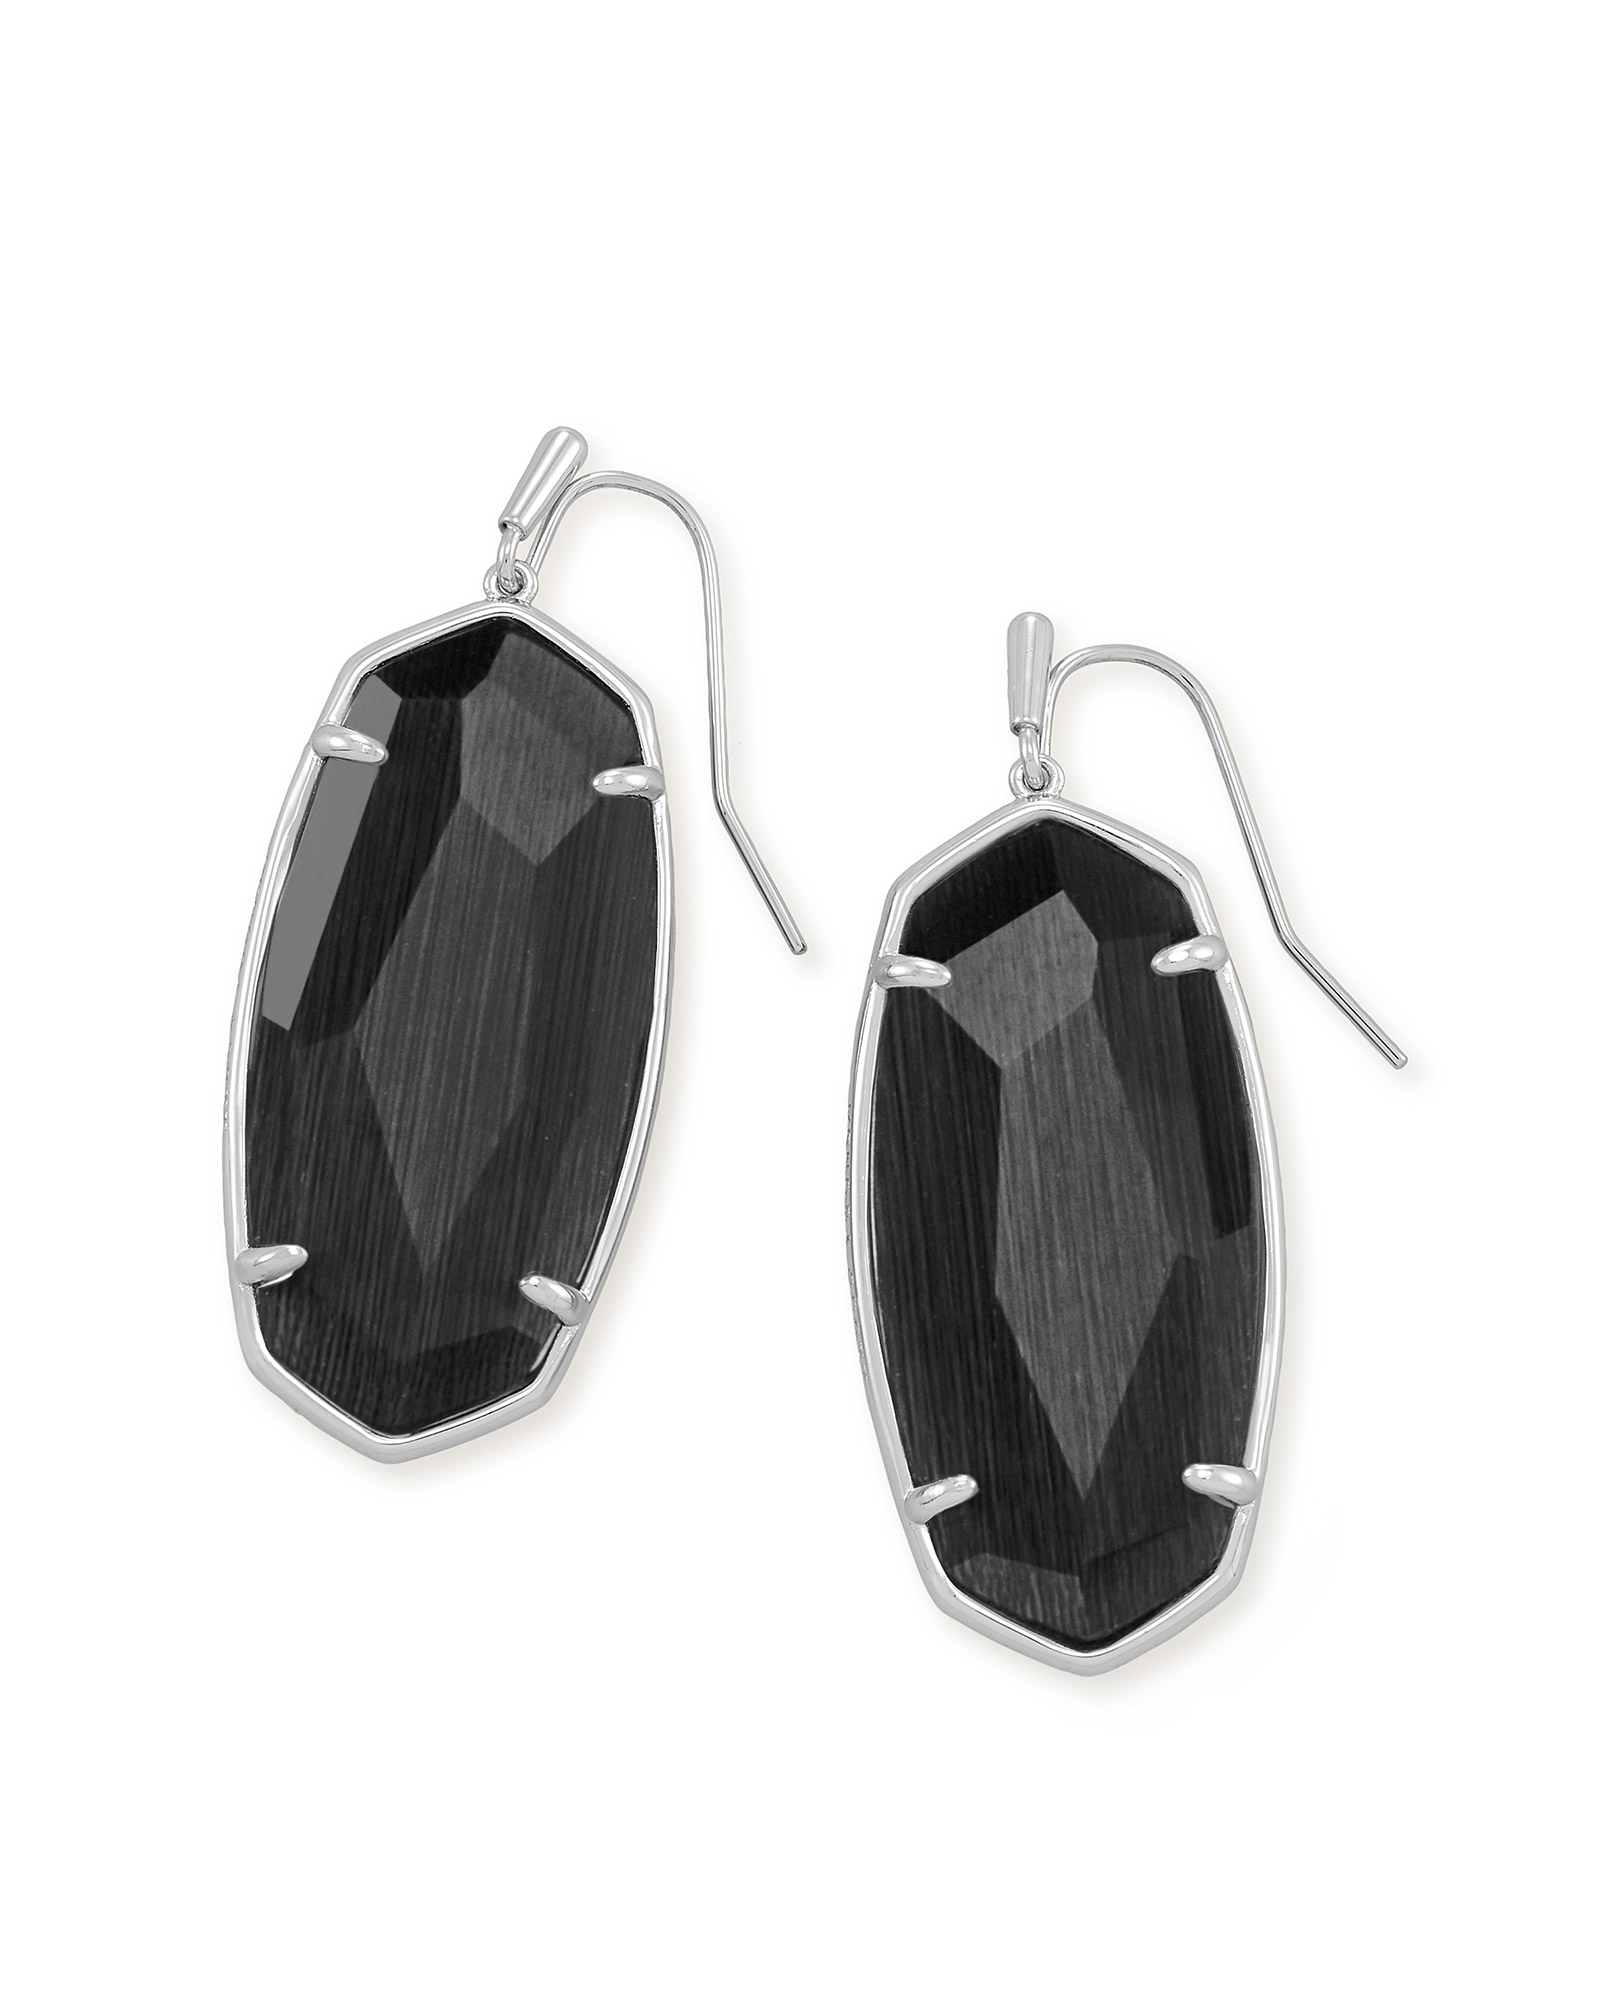 Faceted Elle Silver Drop Earrings in Black Cat's Eye